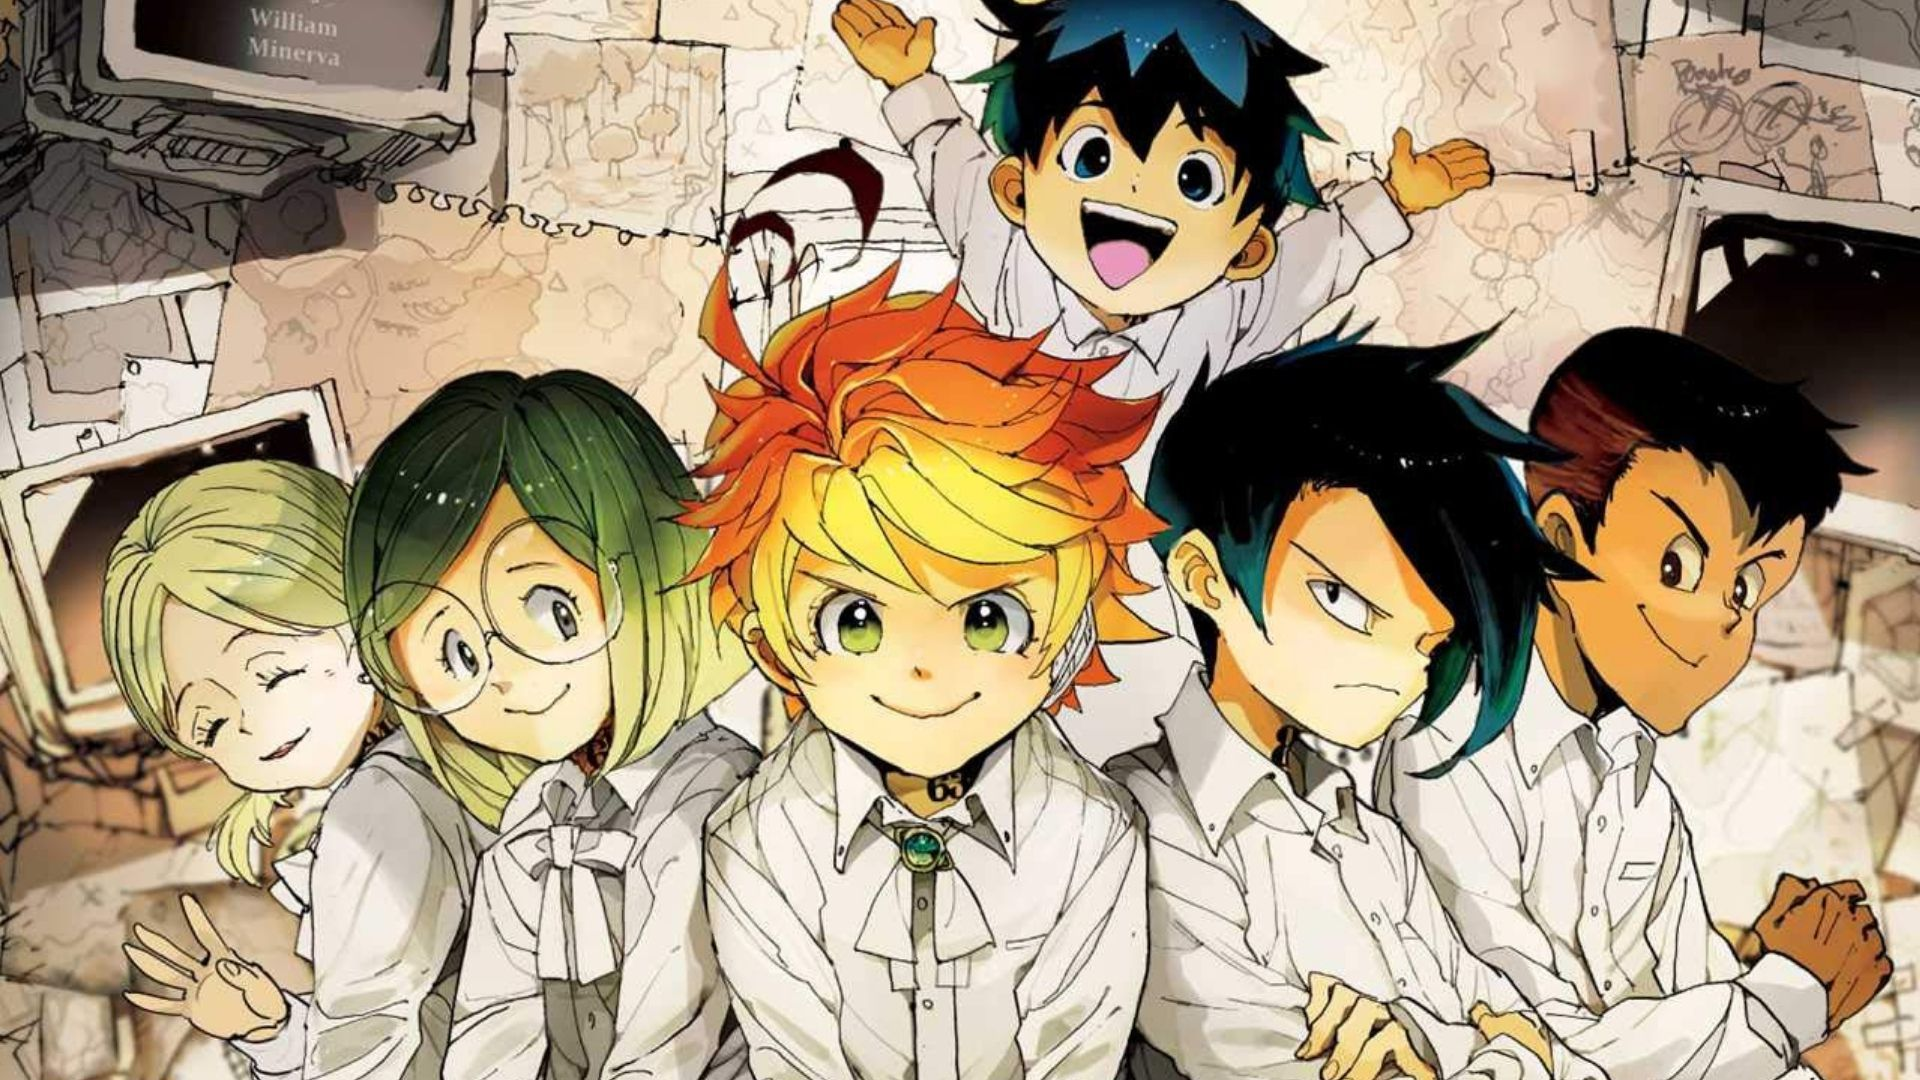 The Promised Neverland Illustrator Created The Cover Of A Famous Magazine Anime Sweet